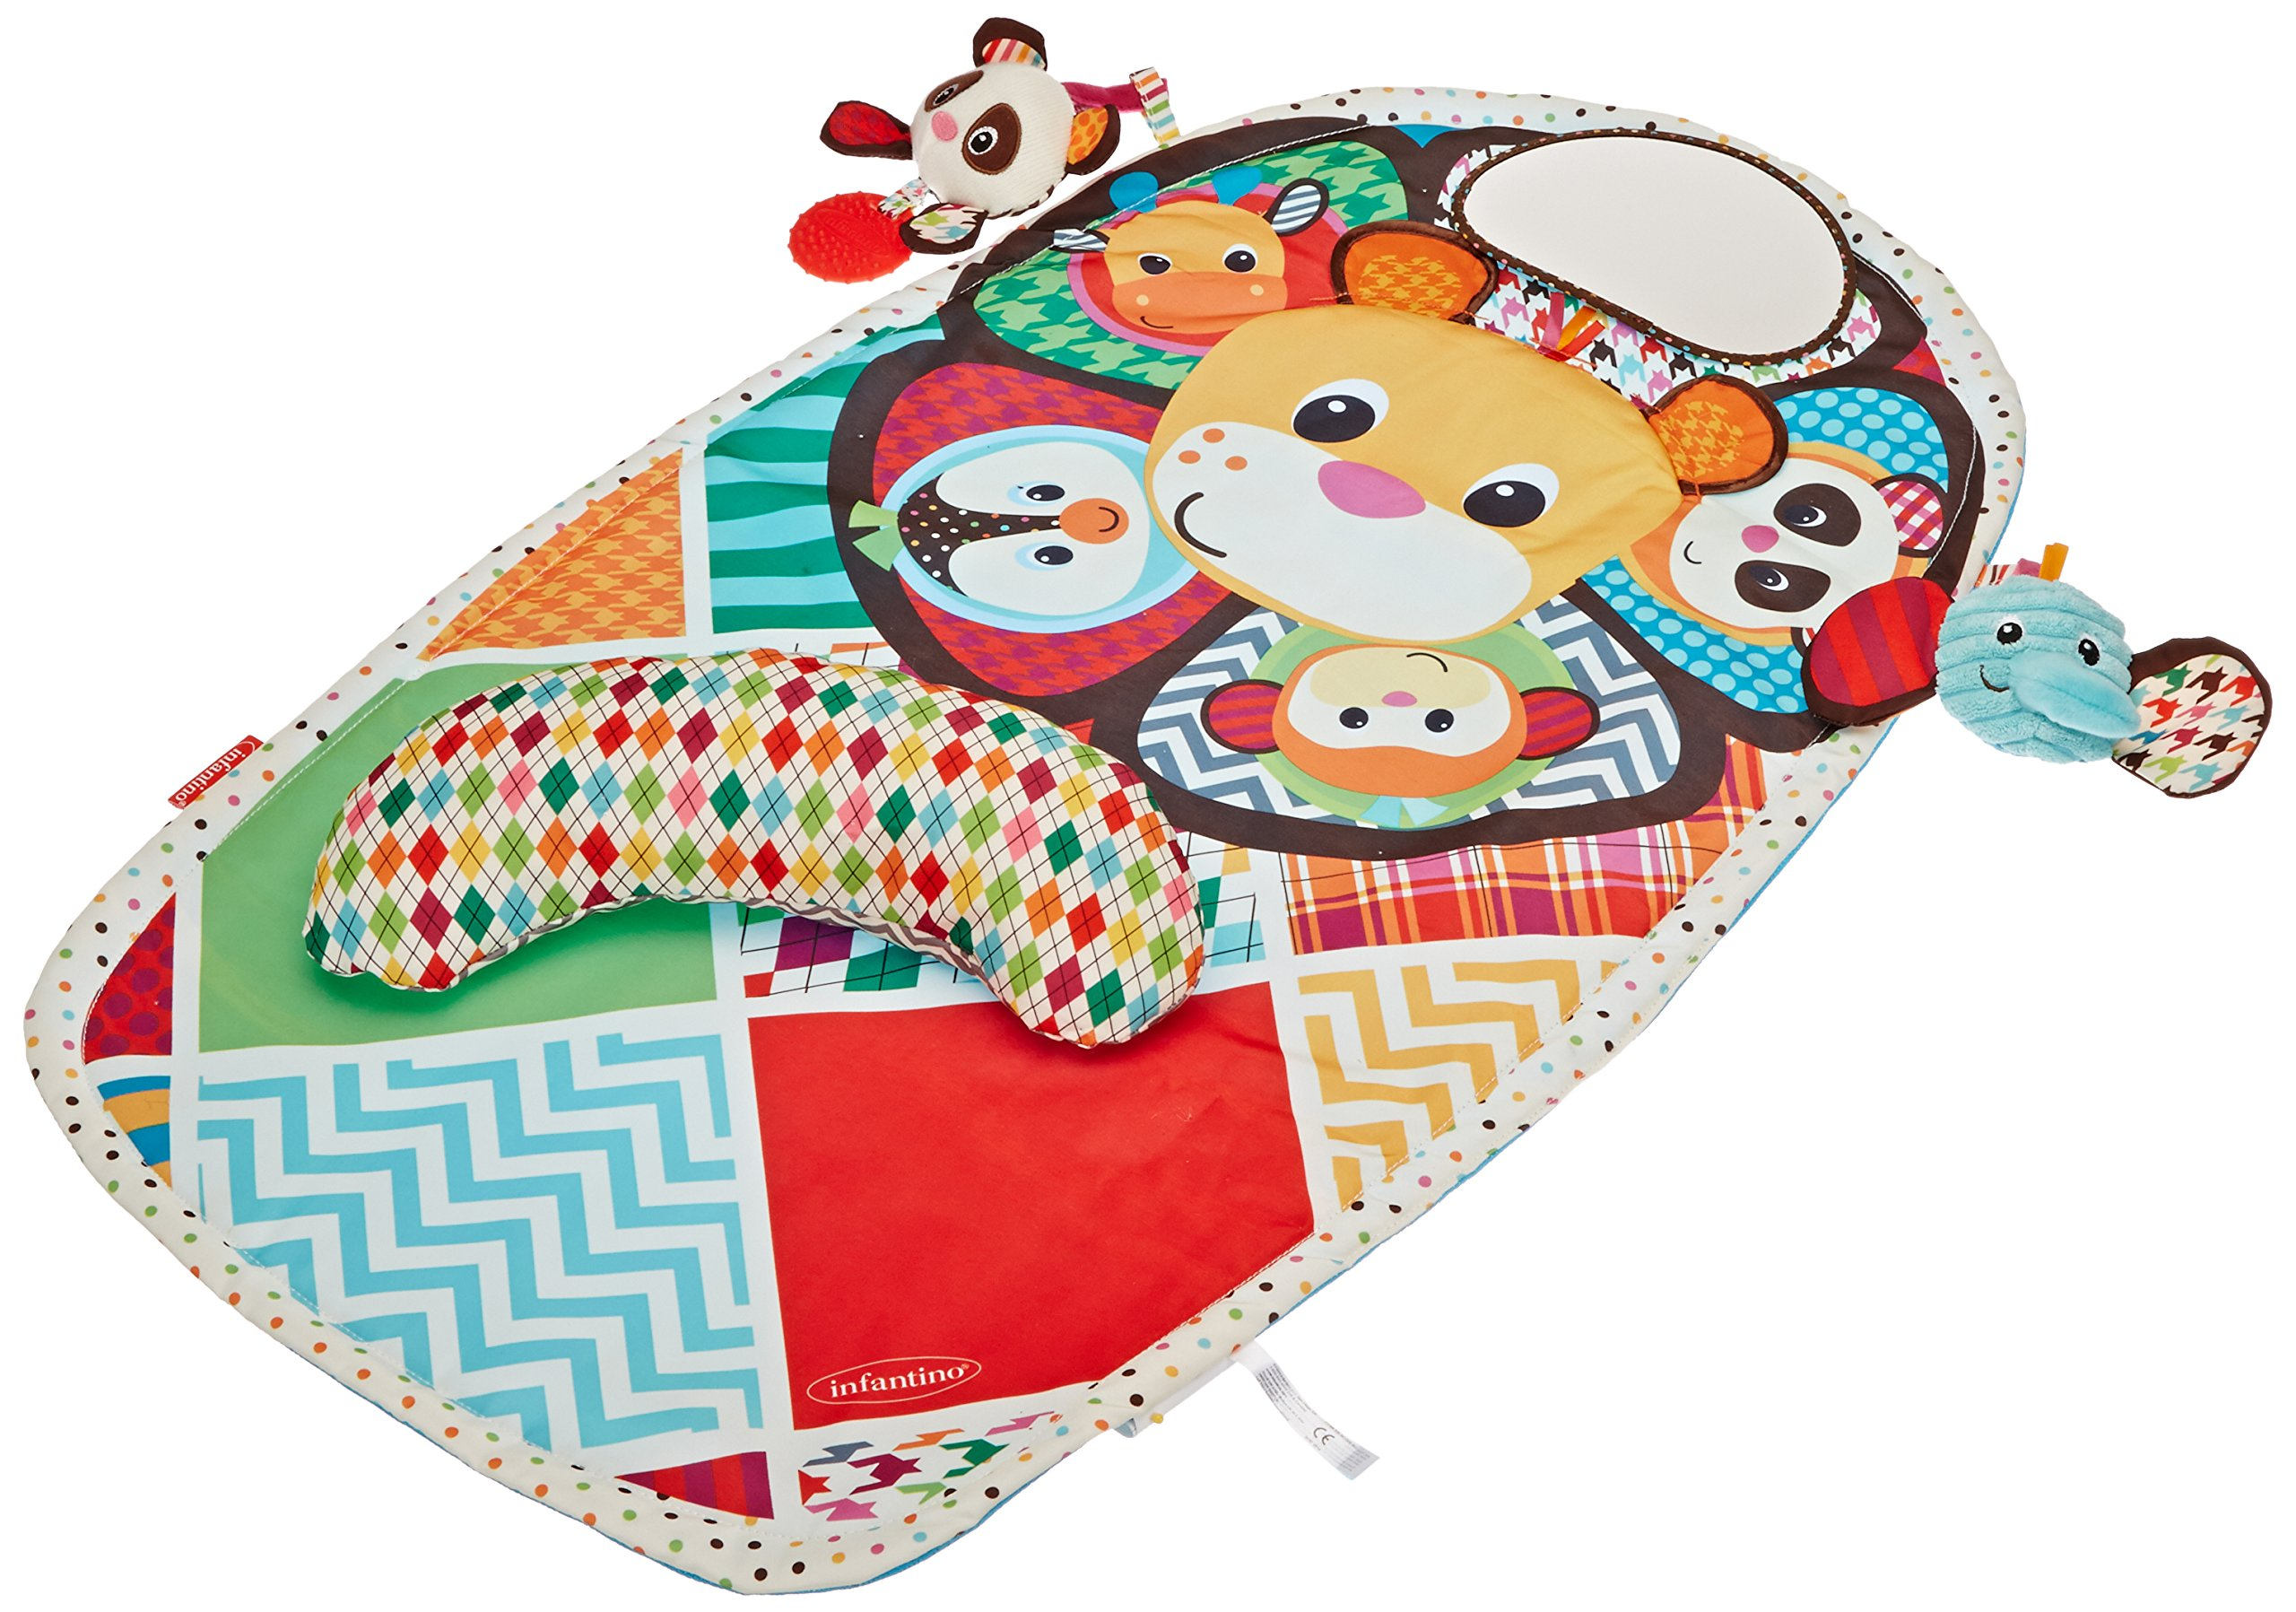 Infantino Peek and Play Tummy Time Activity Mat